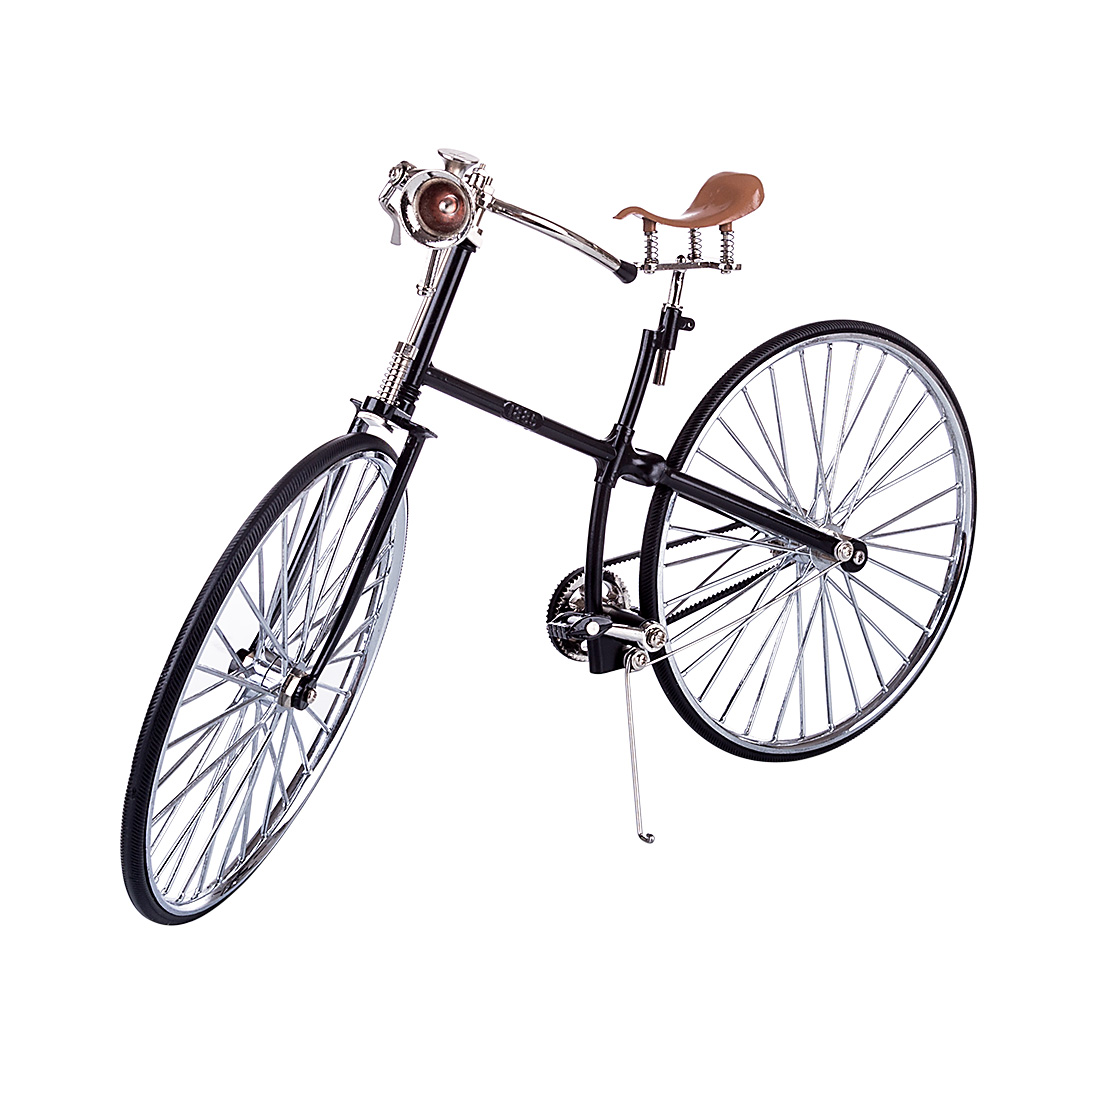 Classic Old Fashioned  Metal DIY Assembly Bicycle Model Simulated Bike Model Home Room Office Decor - FS-0166 Black